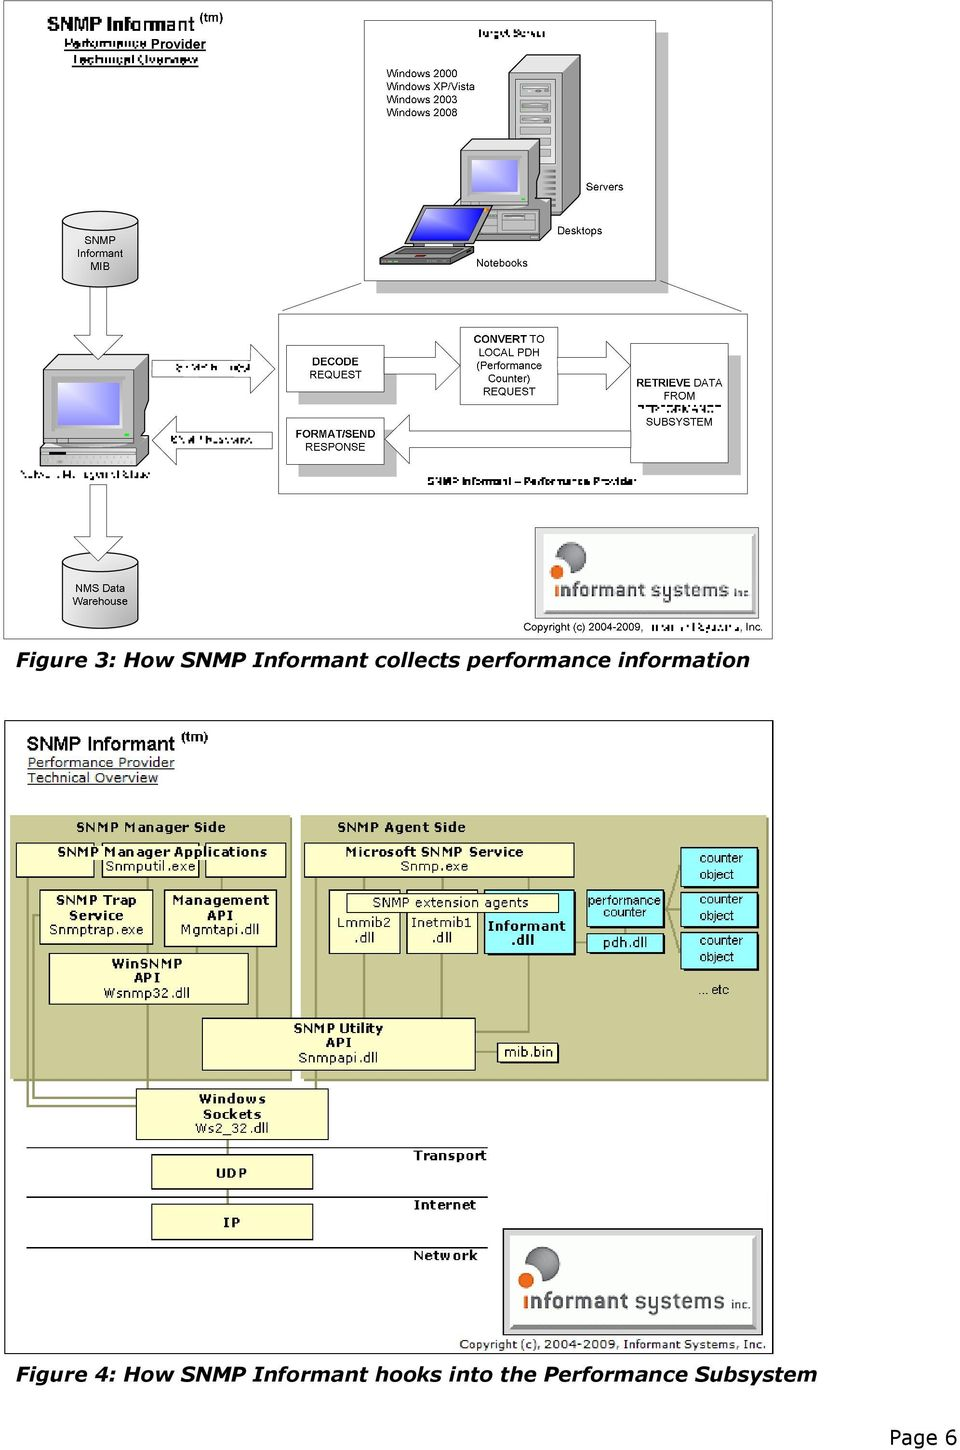 Figure 4: How SNMP Informant